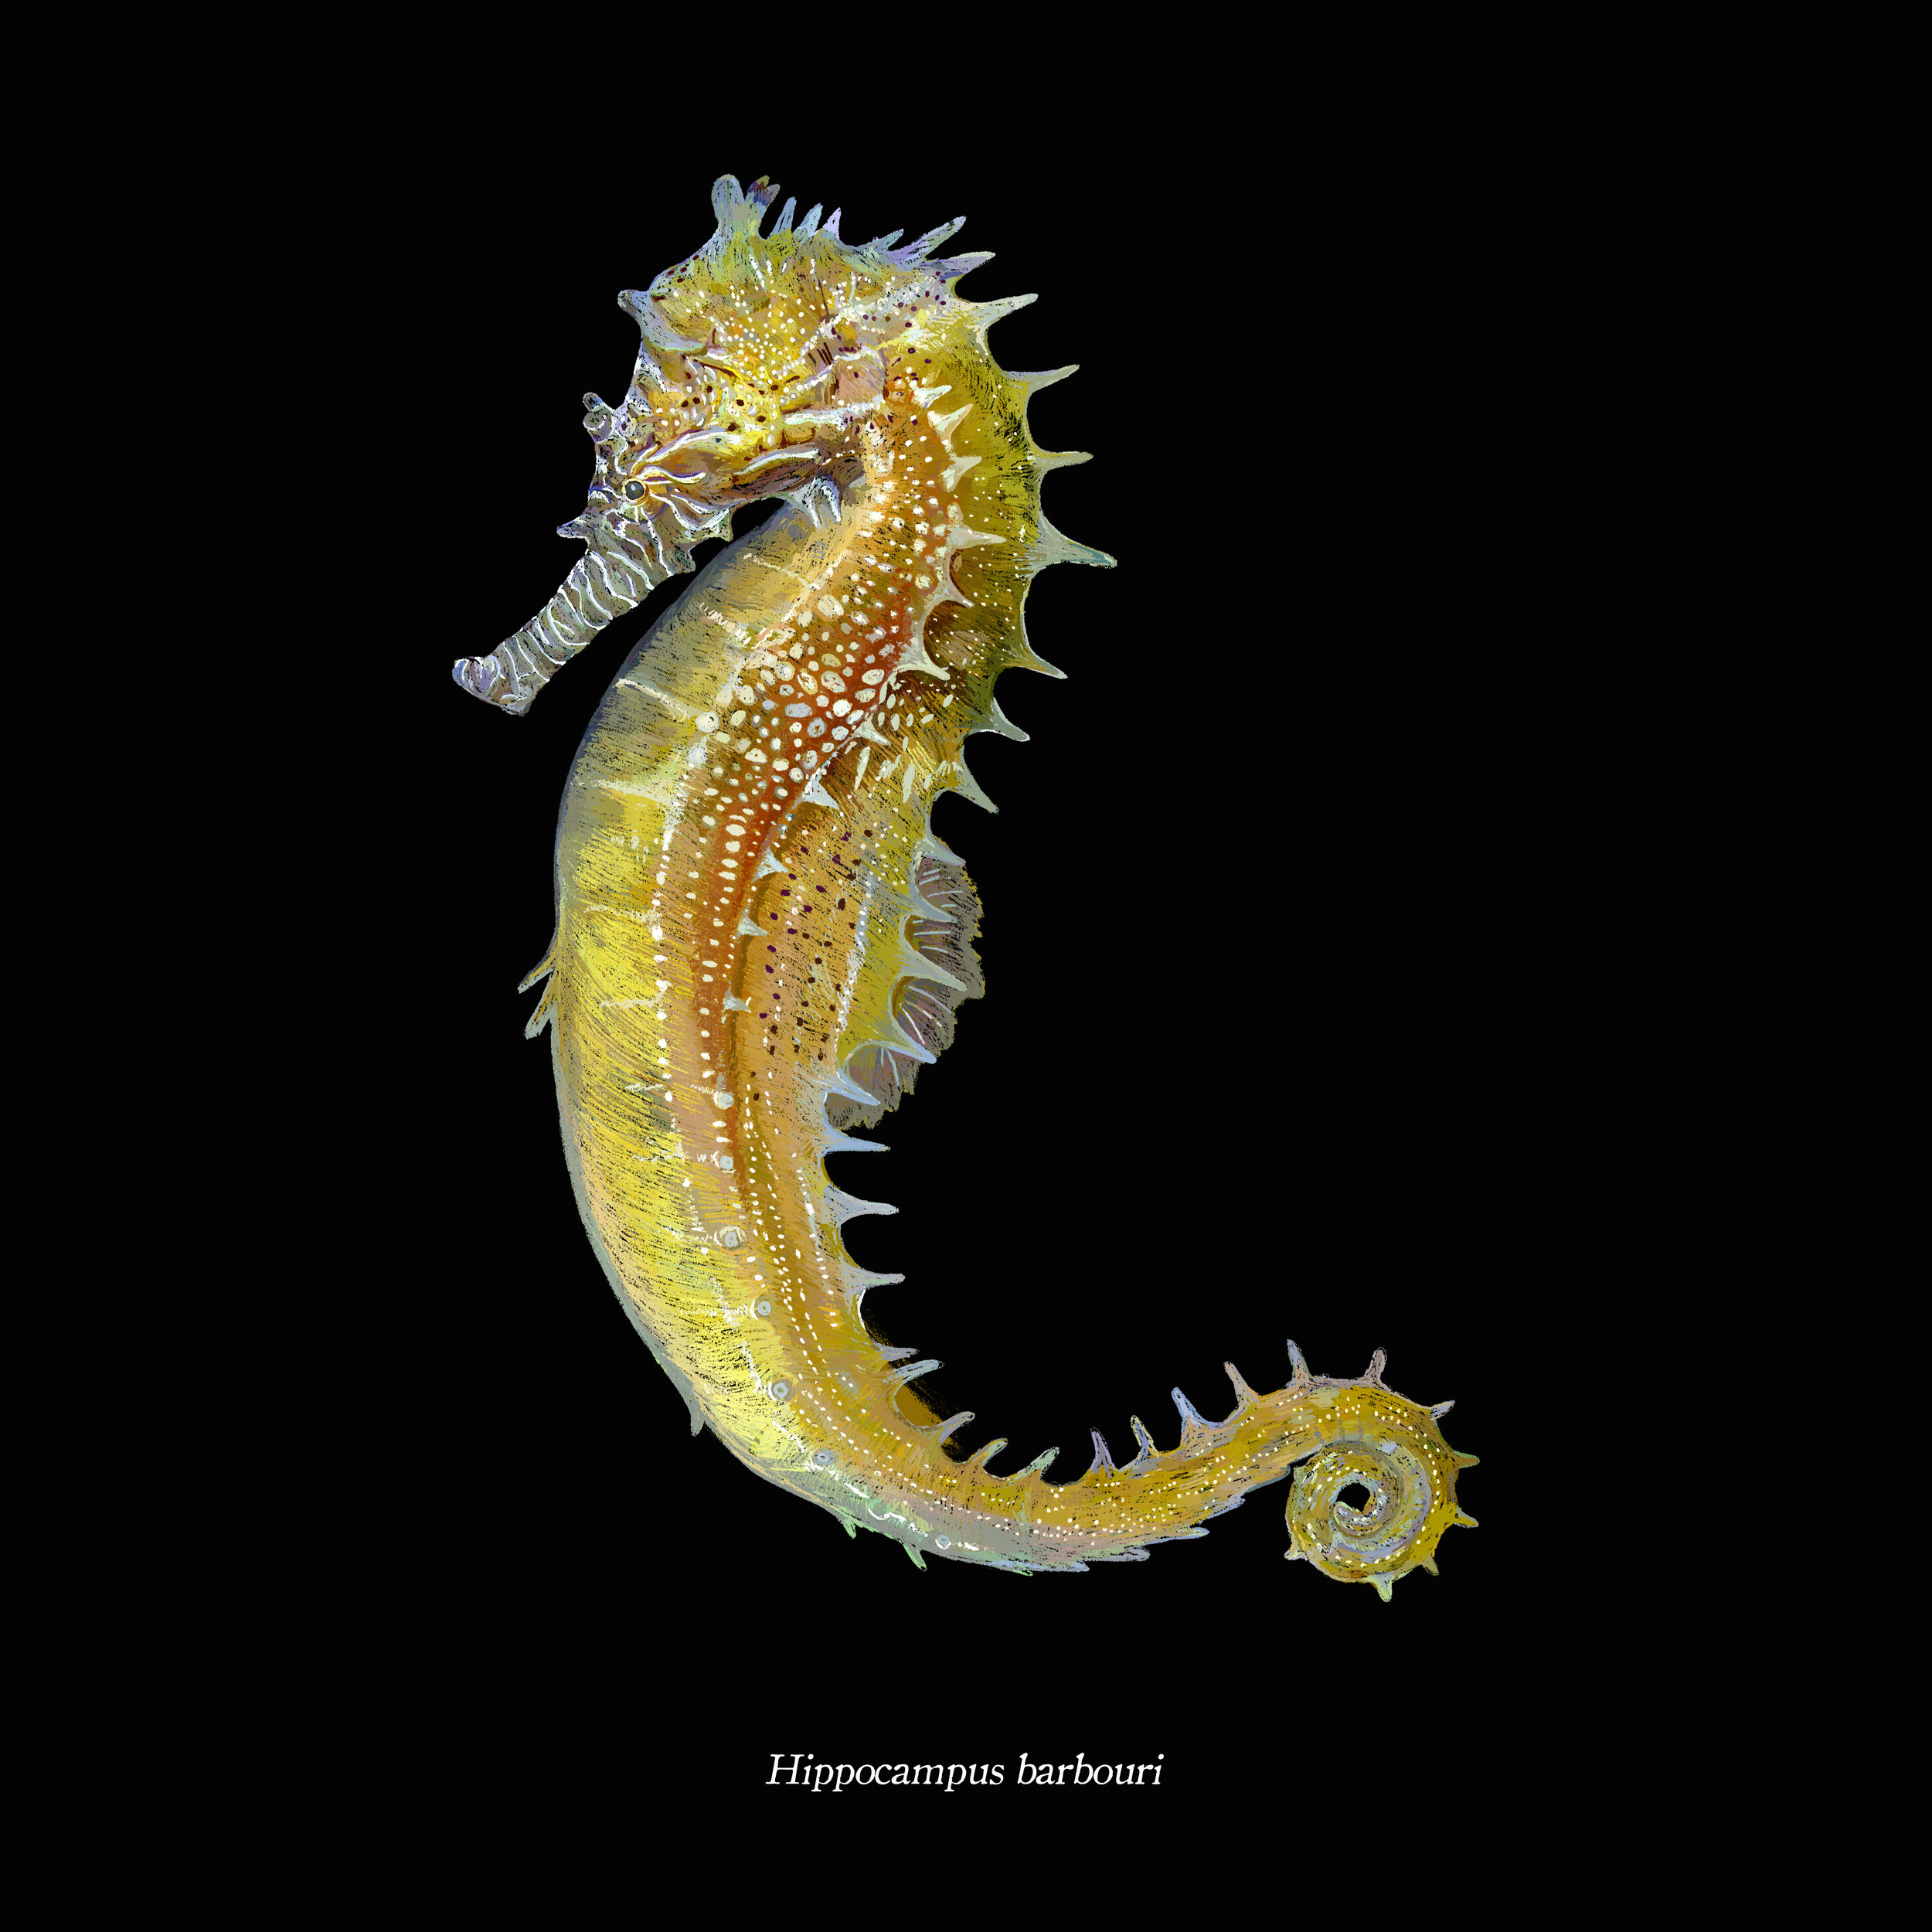 Hippocampus barbouri